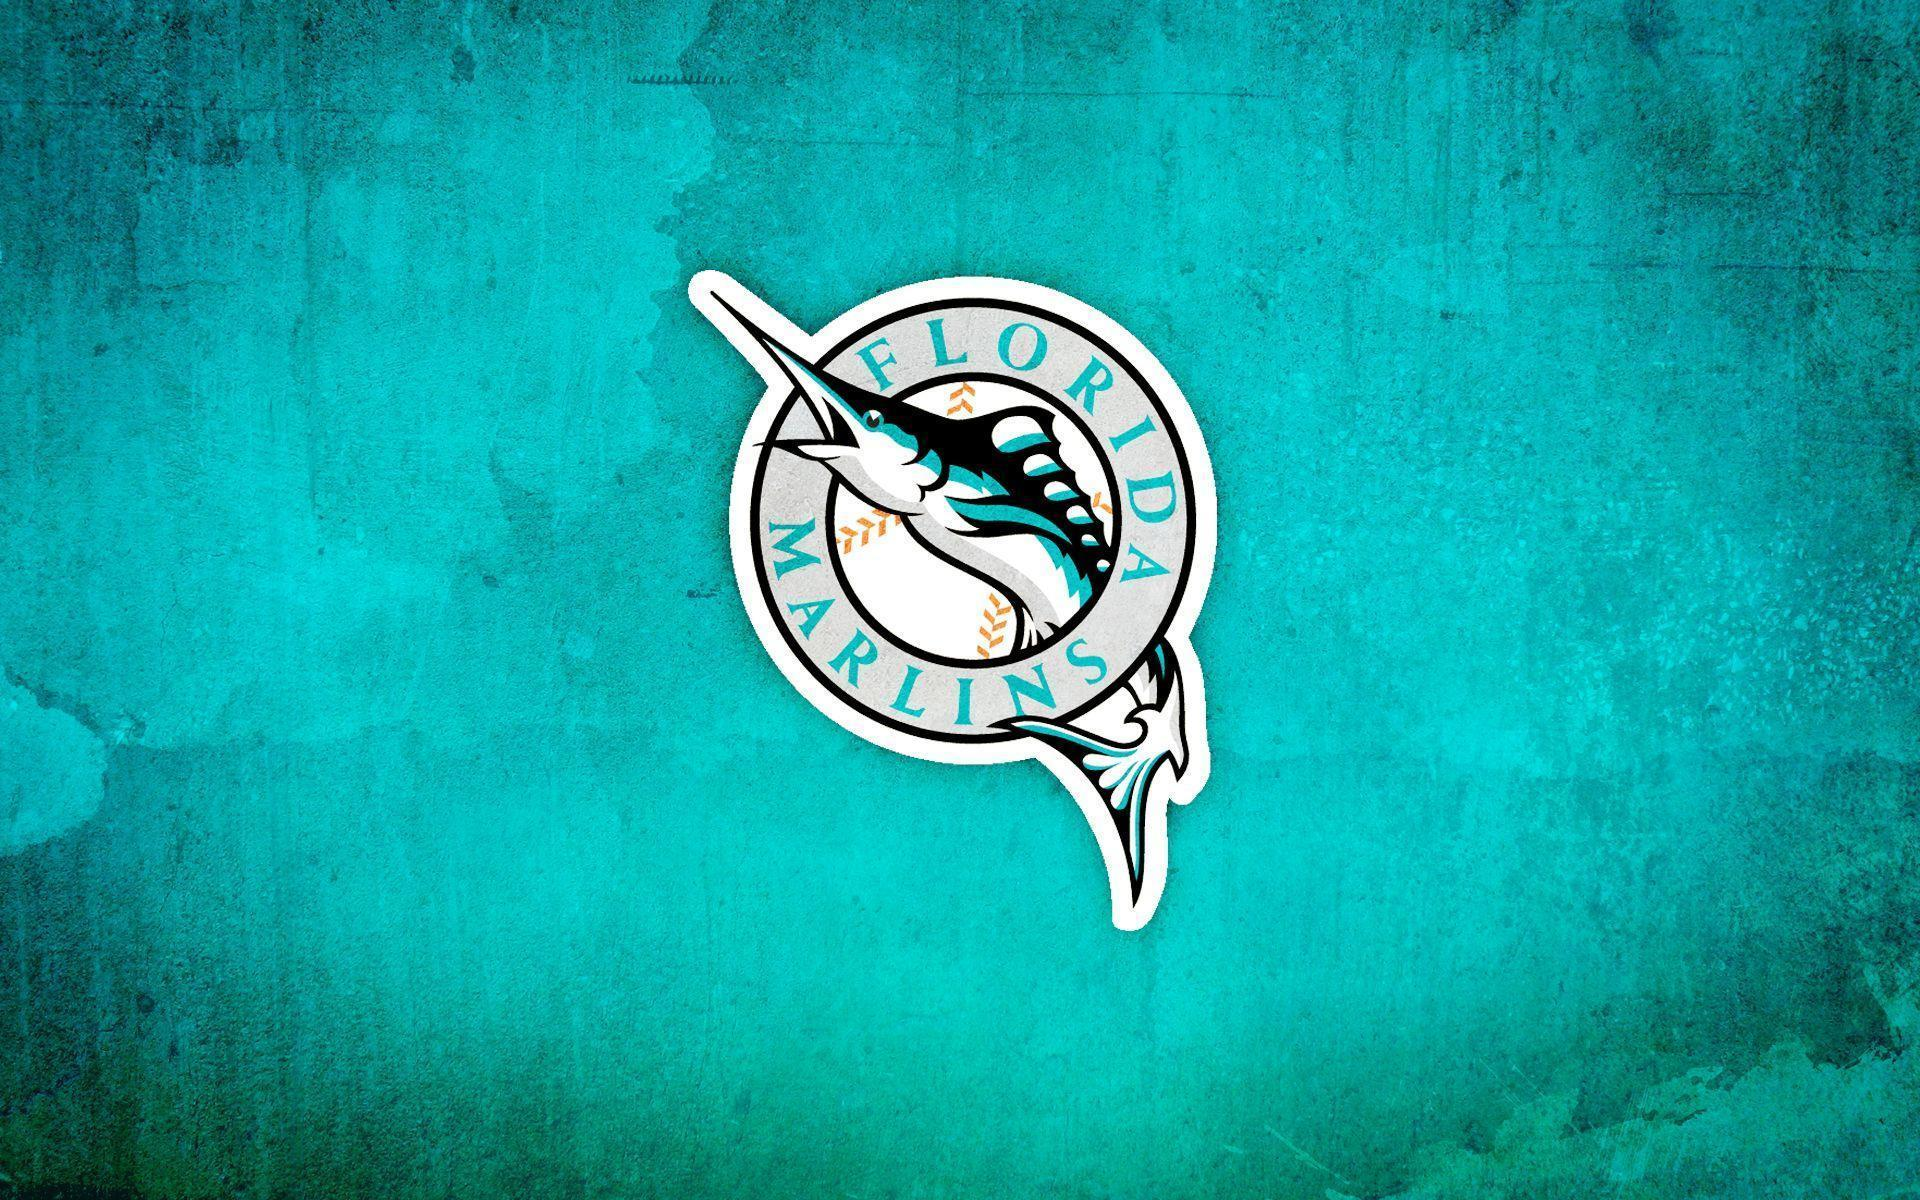 Mlb Logo Florida Marlins Baseball 1920x1200